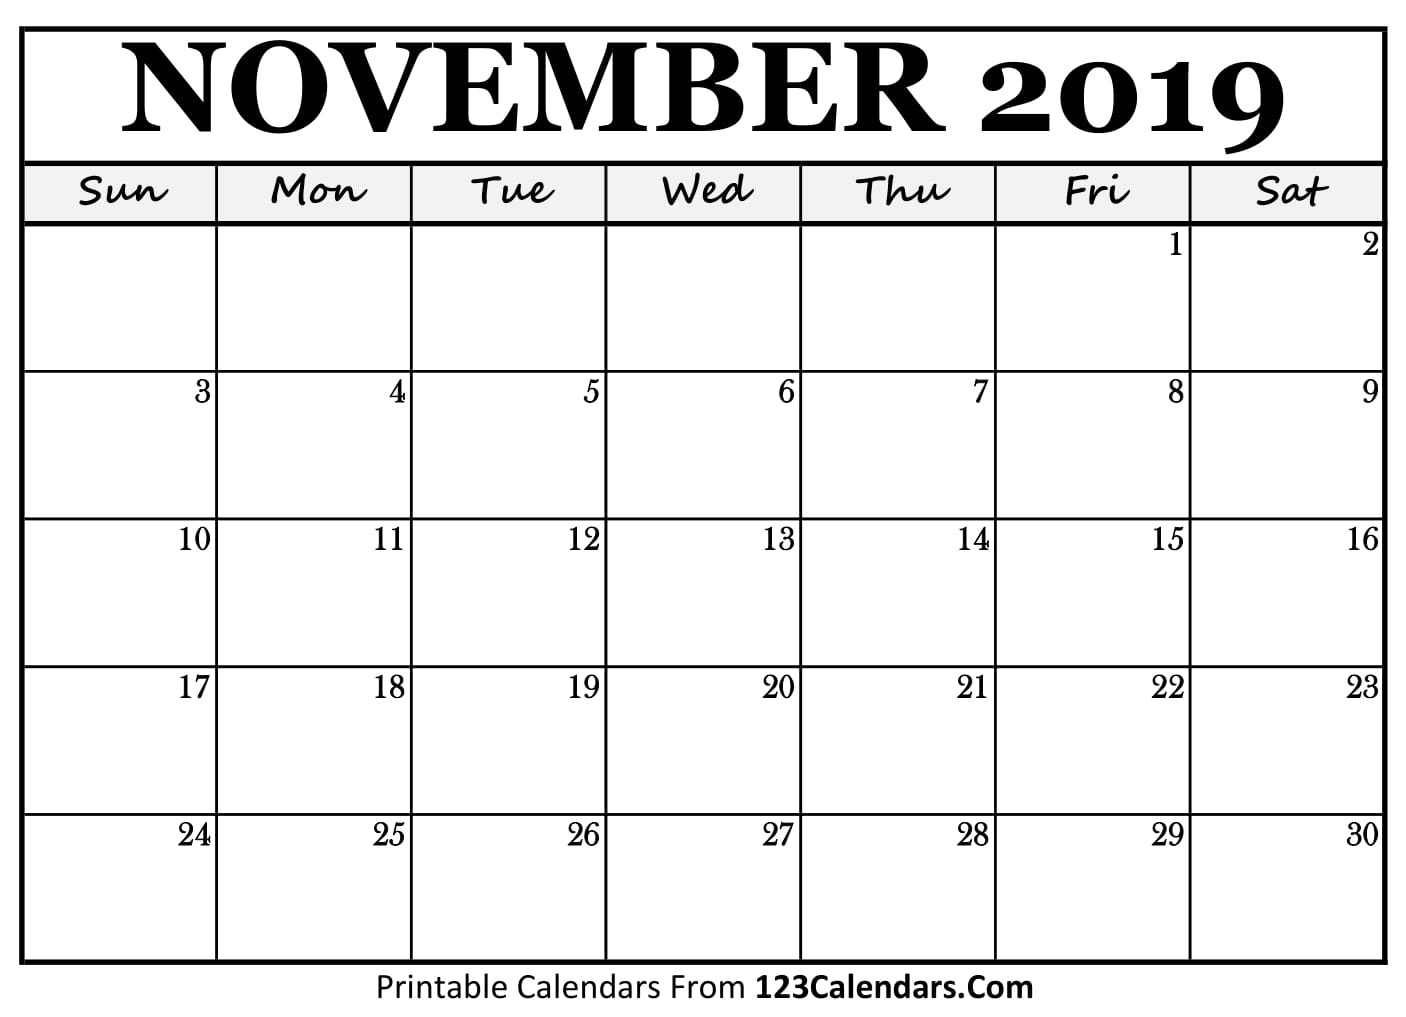 Printable November 2018 Calendar Templates November Calendar 2018 with Holidays